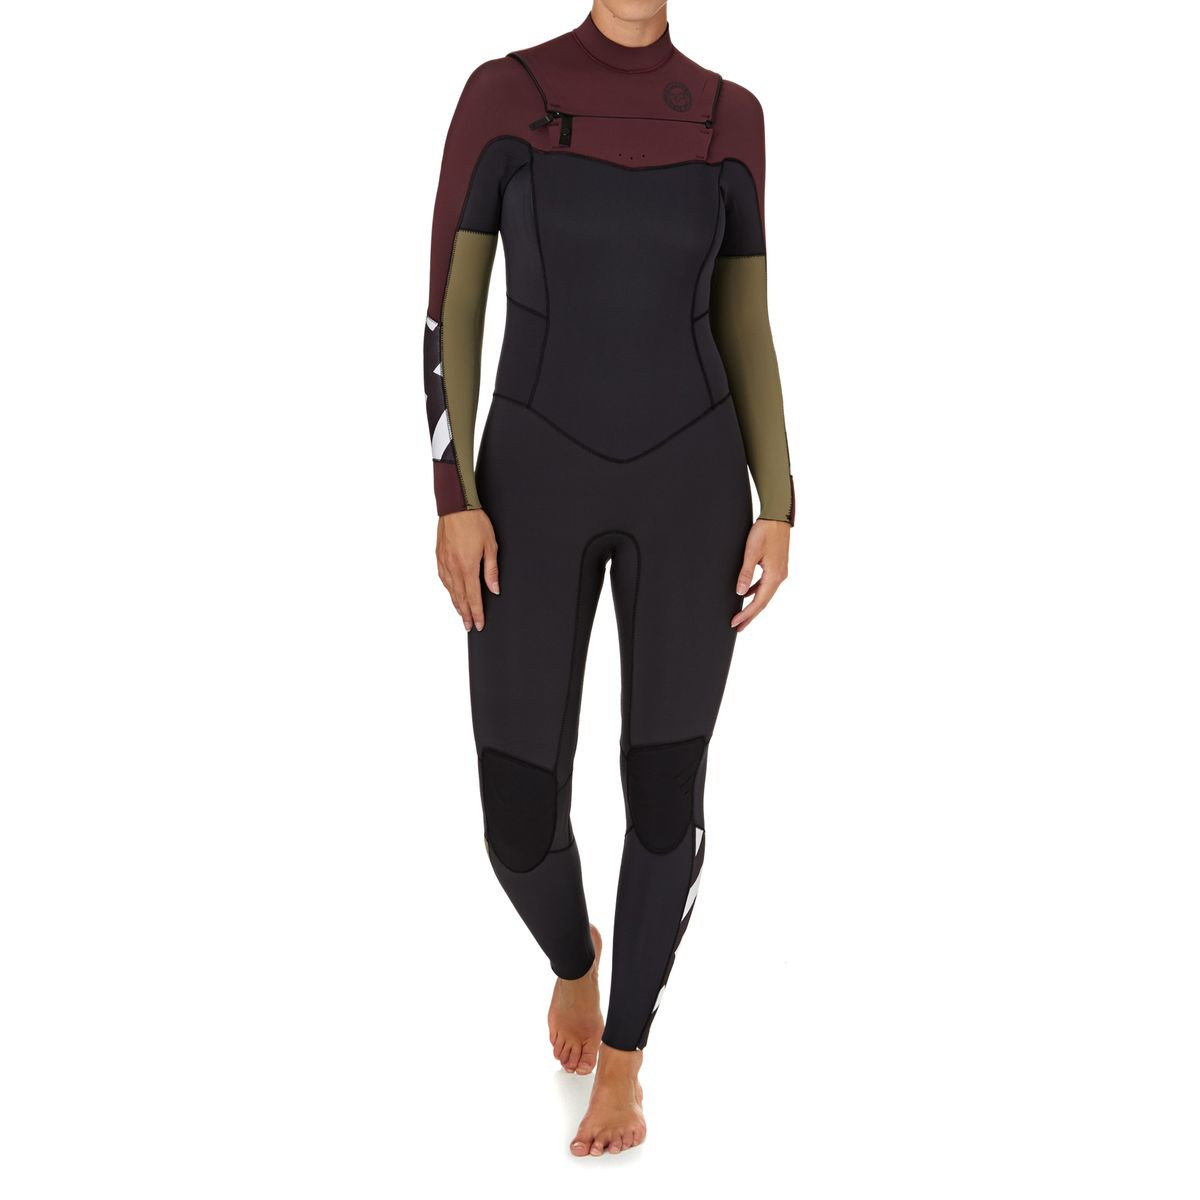 Billabong Womens Surf Capsule Salty Dayz 5/4mm 2018 Chest Zip Wetsuit - Mulberry